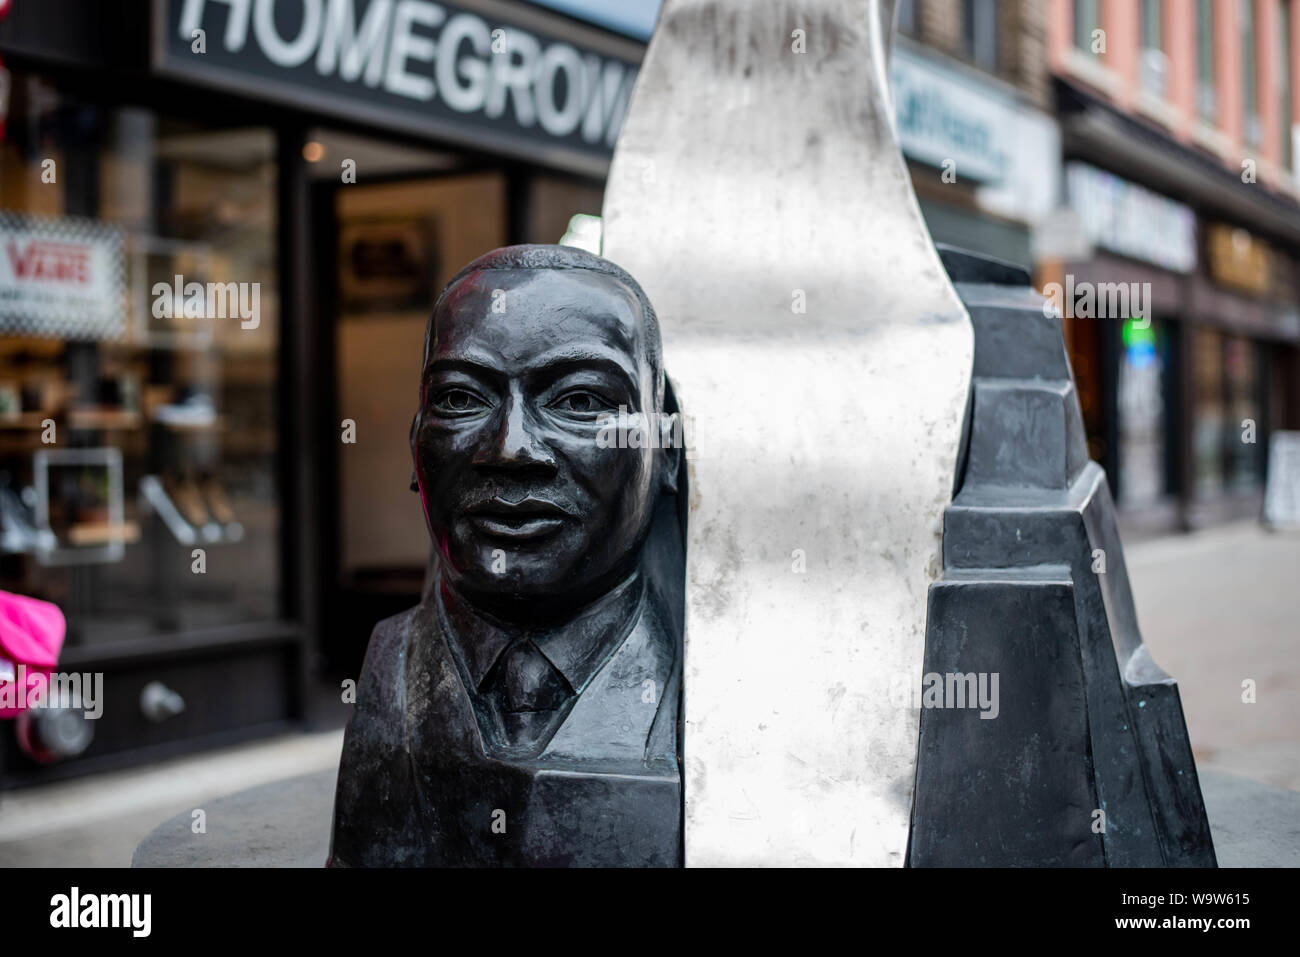 A sculpture of Martin Luther King Jr., in Ithaca, N.Y., USA Stock Photo